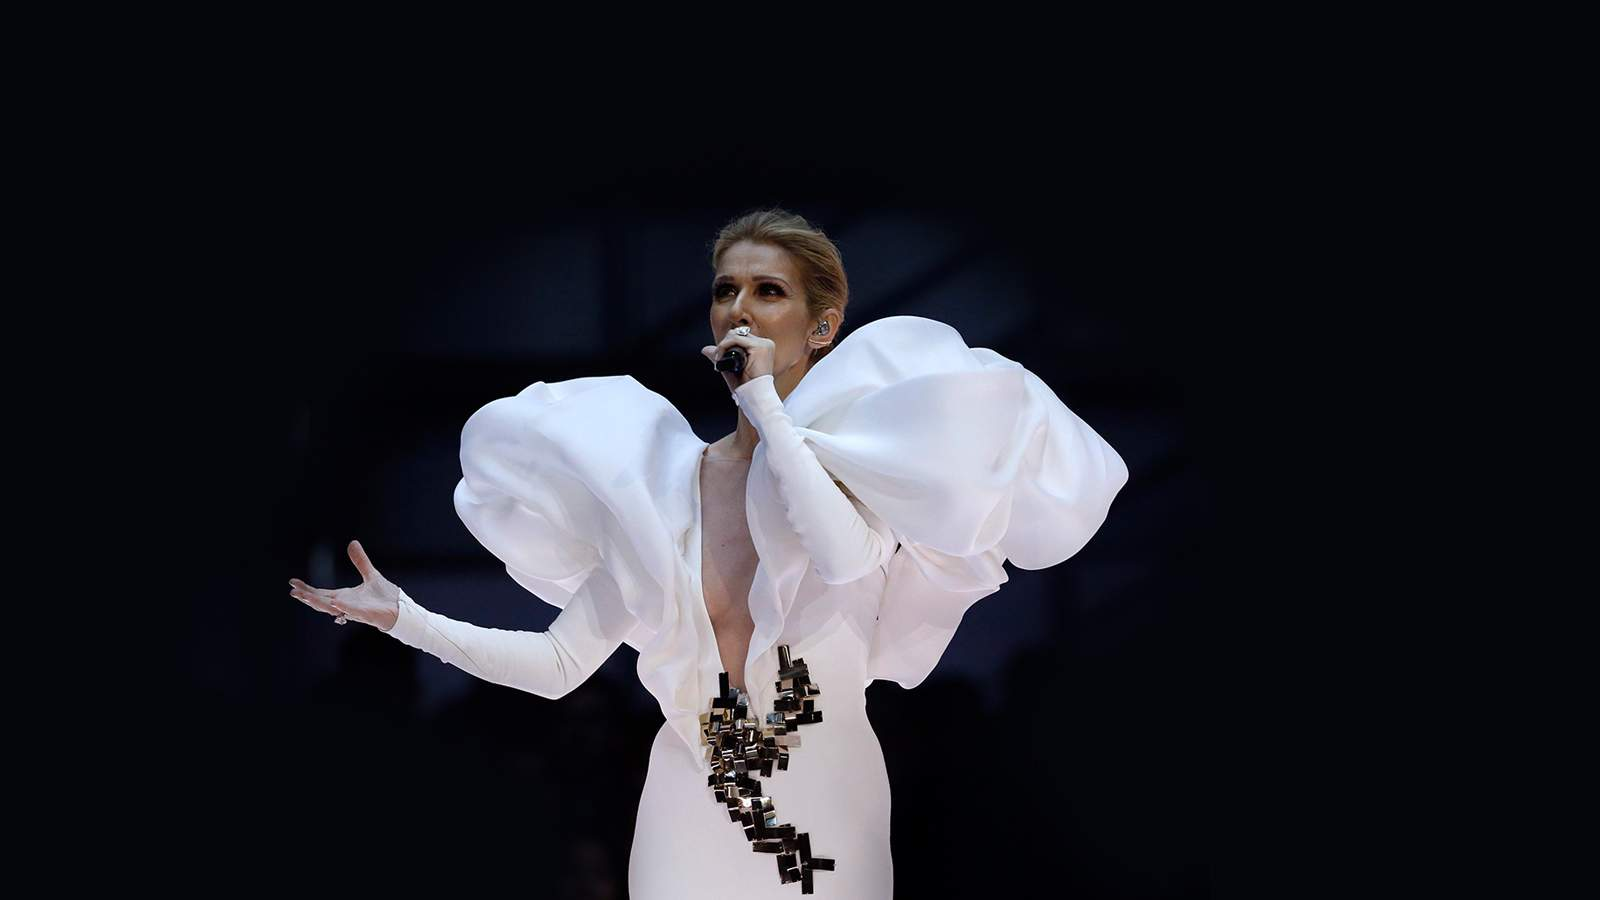 Celine Dion (Rescheduled from 4/17/2020)